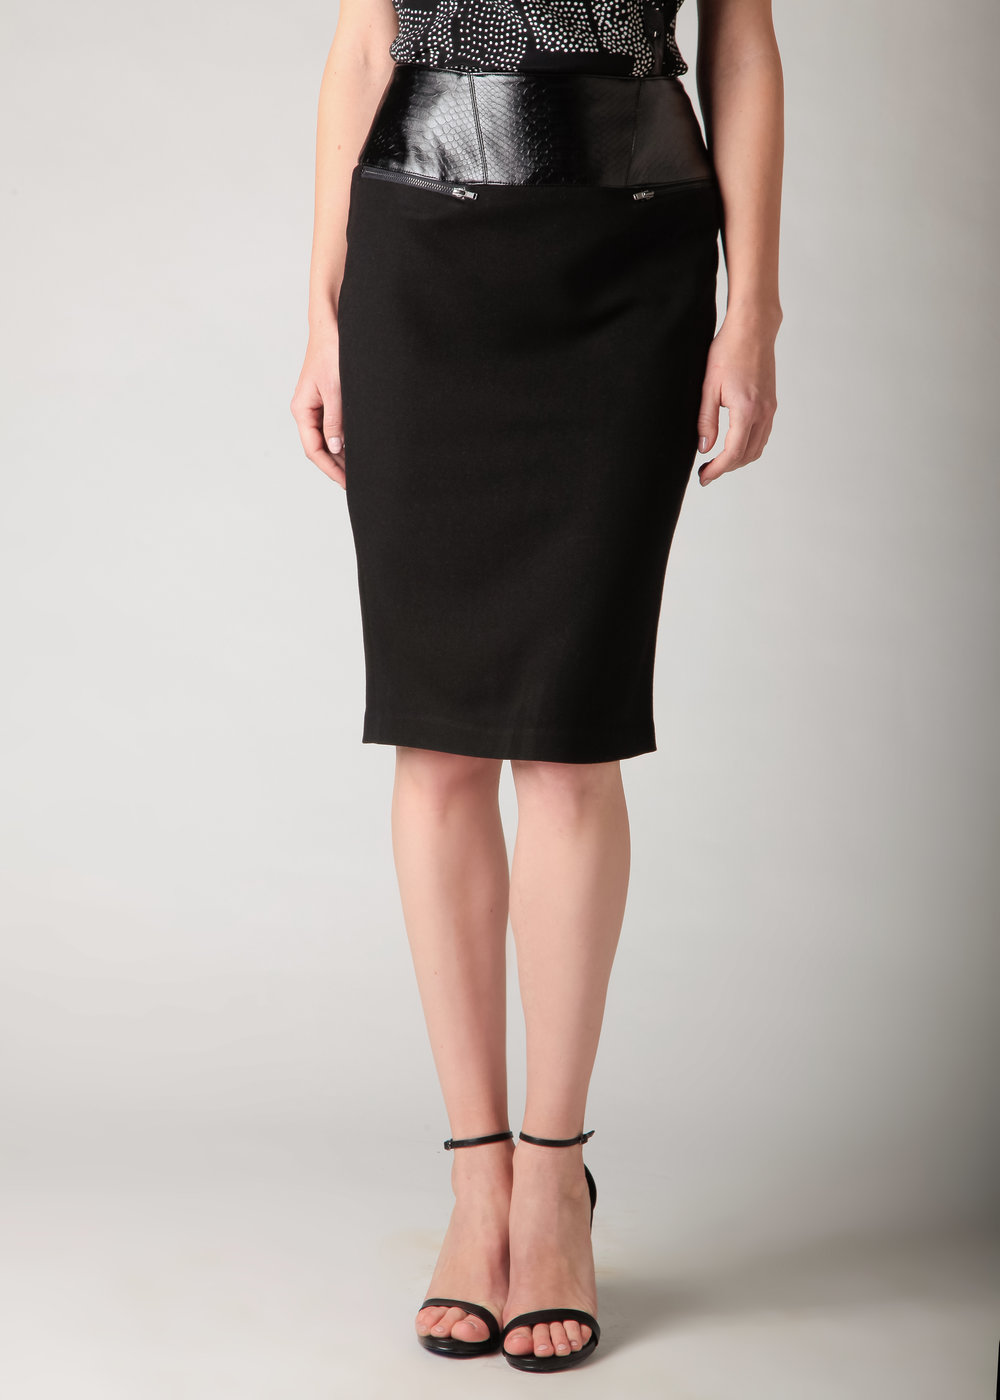 Pair it With - Elton Pencil Skirt